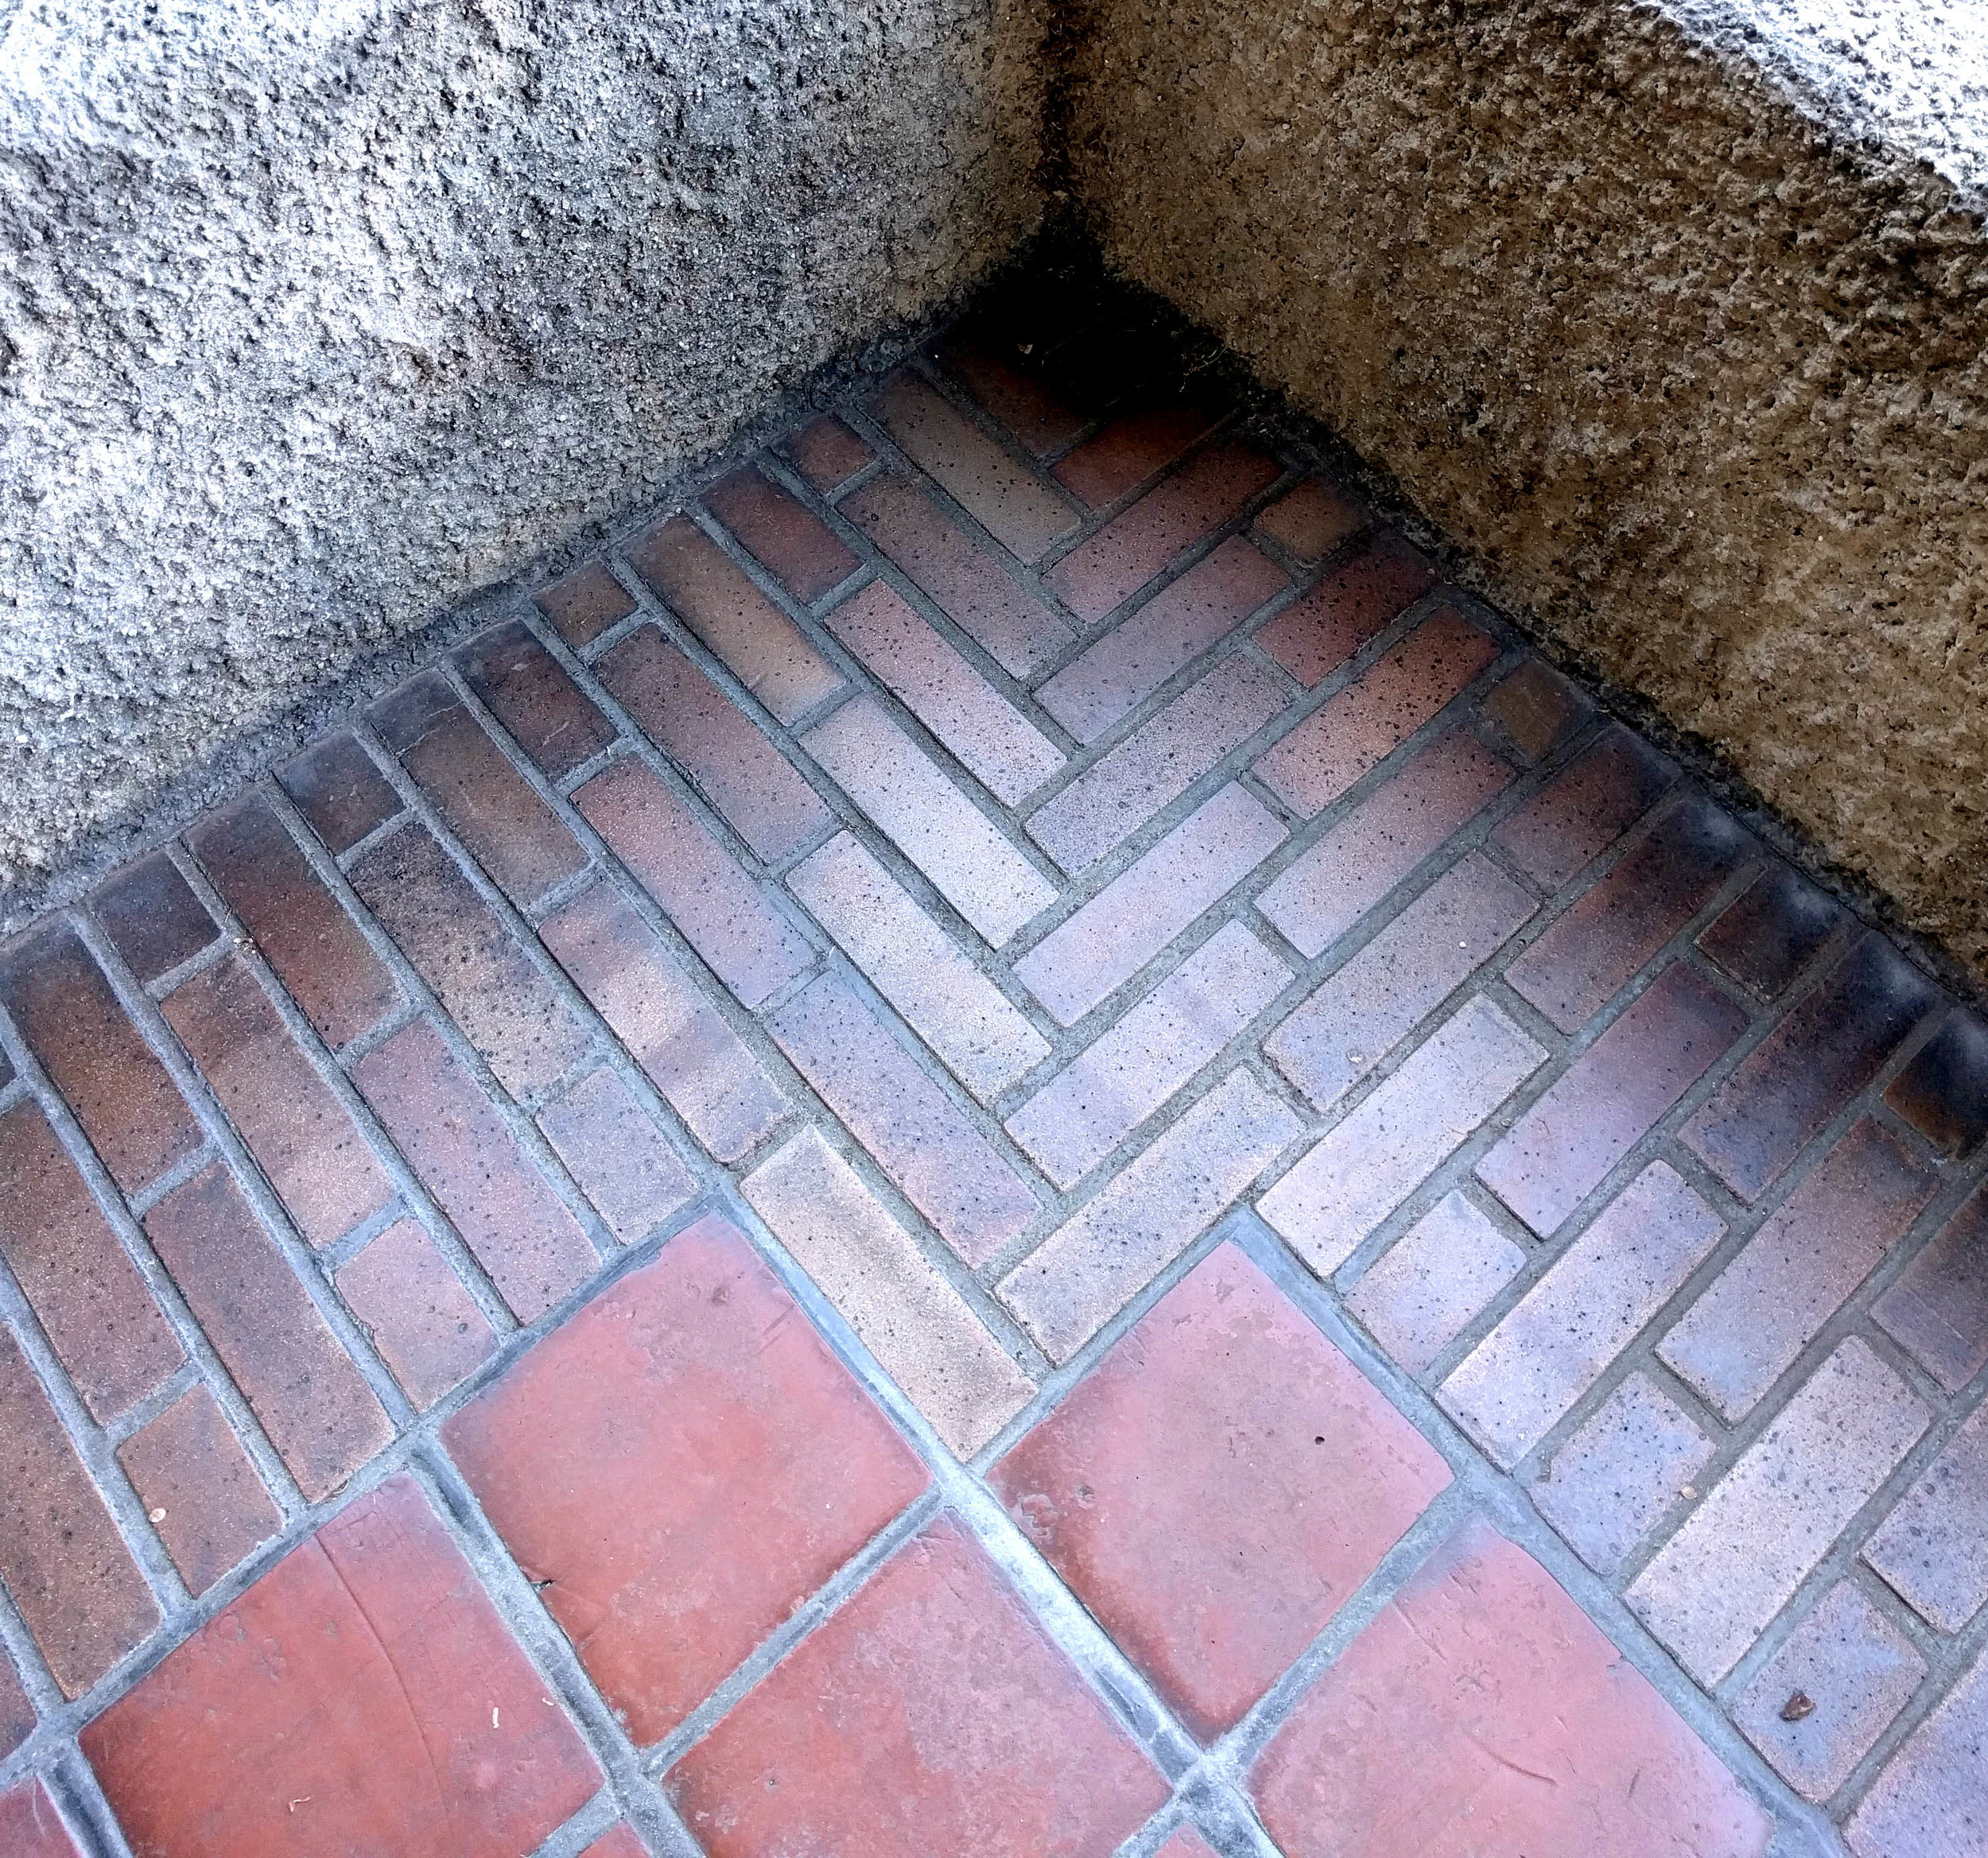 Hand-laid bricks meet red clay tiles at the Gamble House, from our  2018 office trip  to Los Angeles.